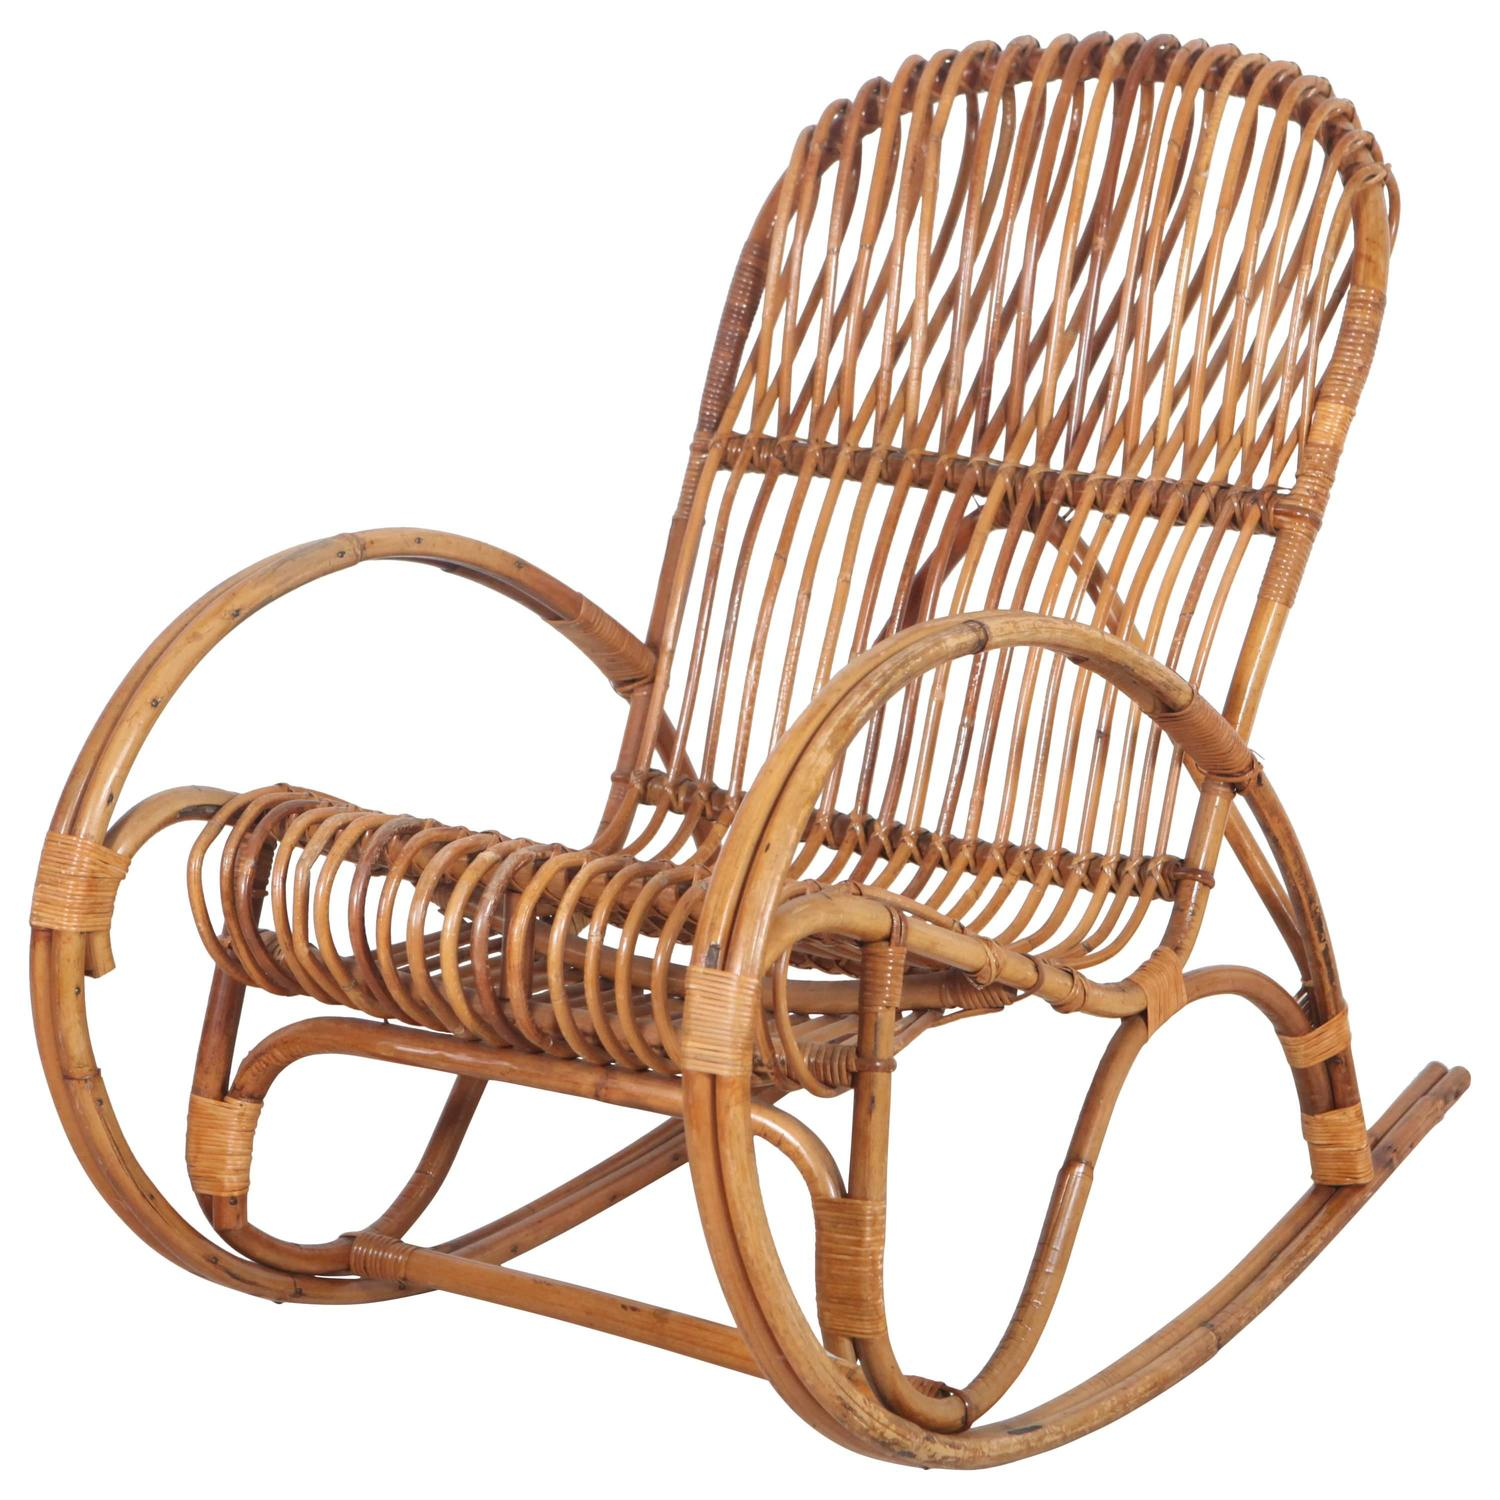 vintage italian bamboo rocking chair for sale at 1stdibs. Black Bedroom Furniture Sets. Home Design Ideas